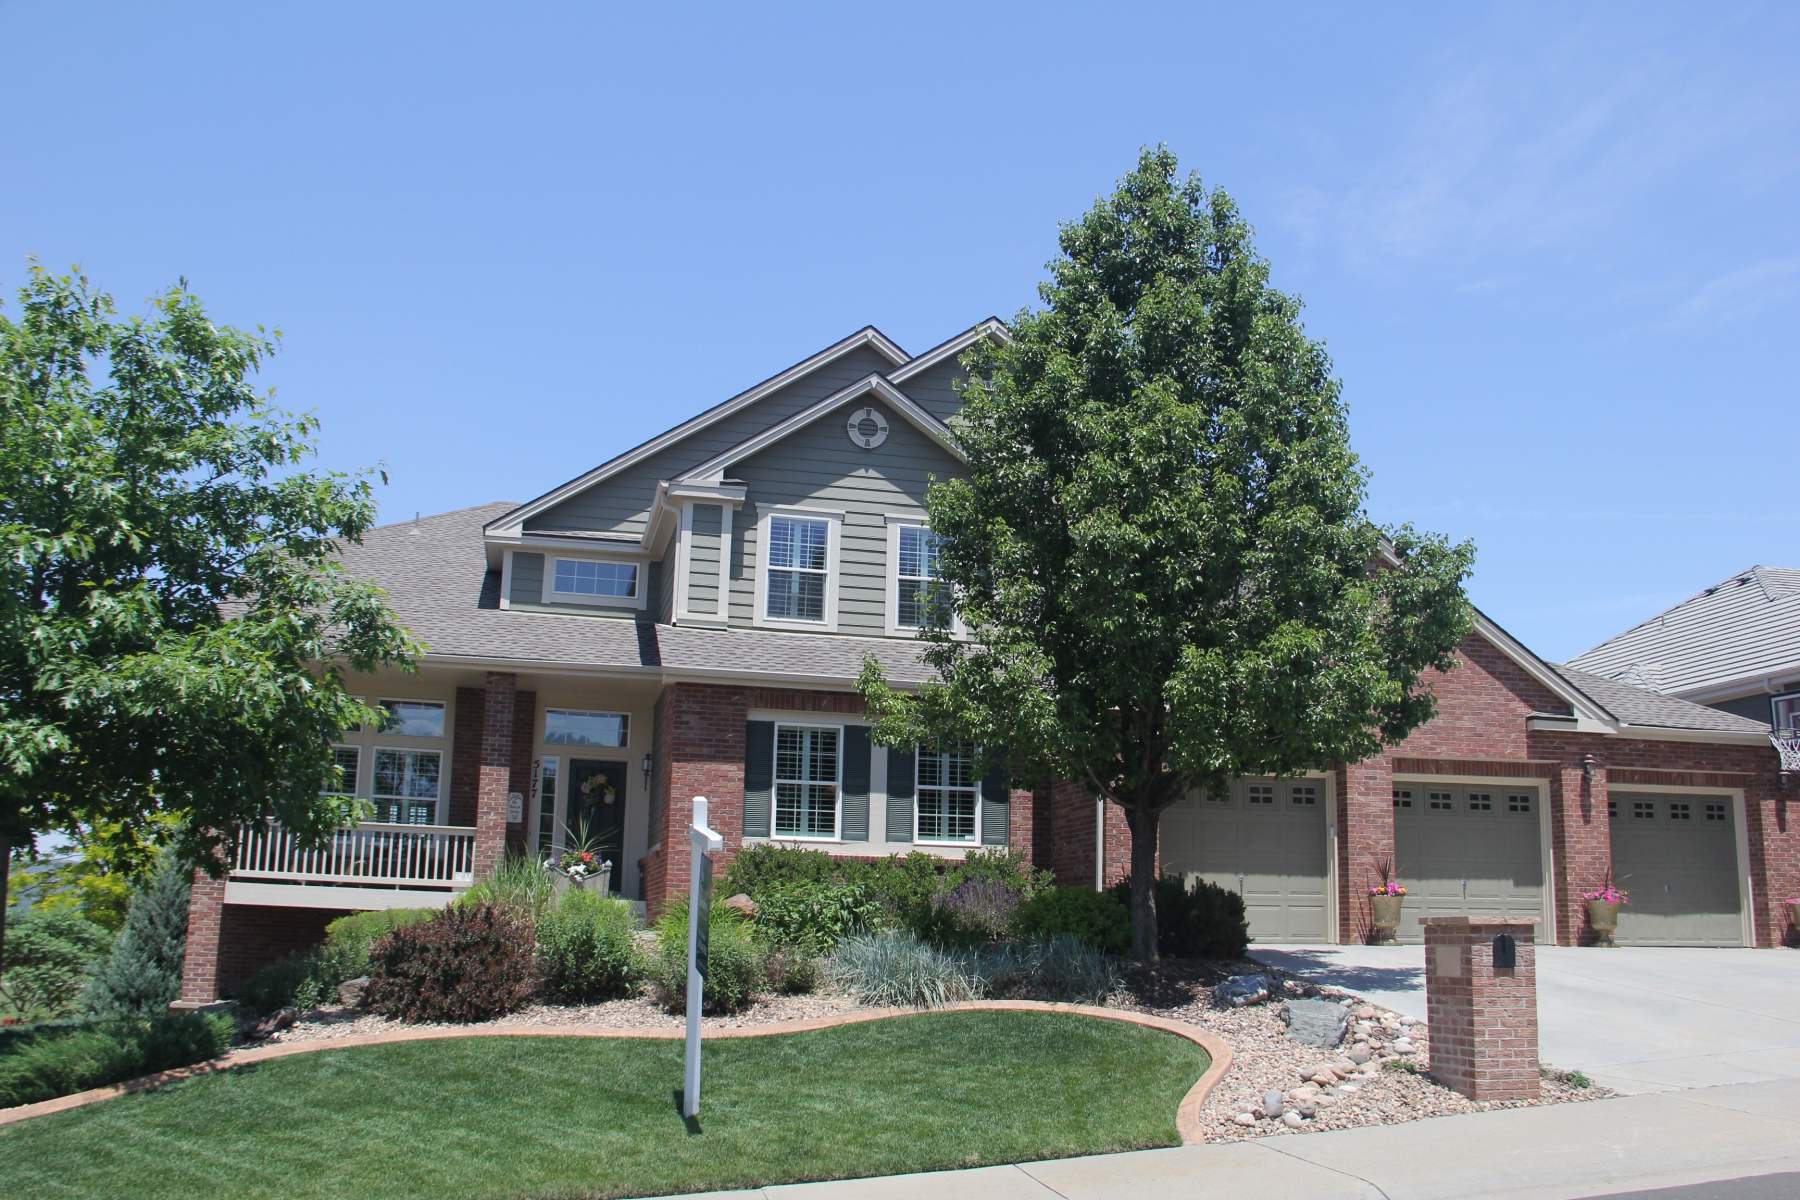 Single Family Home for Sale at Special Family Home in Prestigious Soaring Eagle Estates 5177 Bear Paw Dr Castle Rock, Colorado 80109 United States